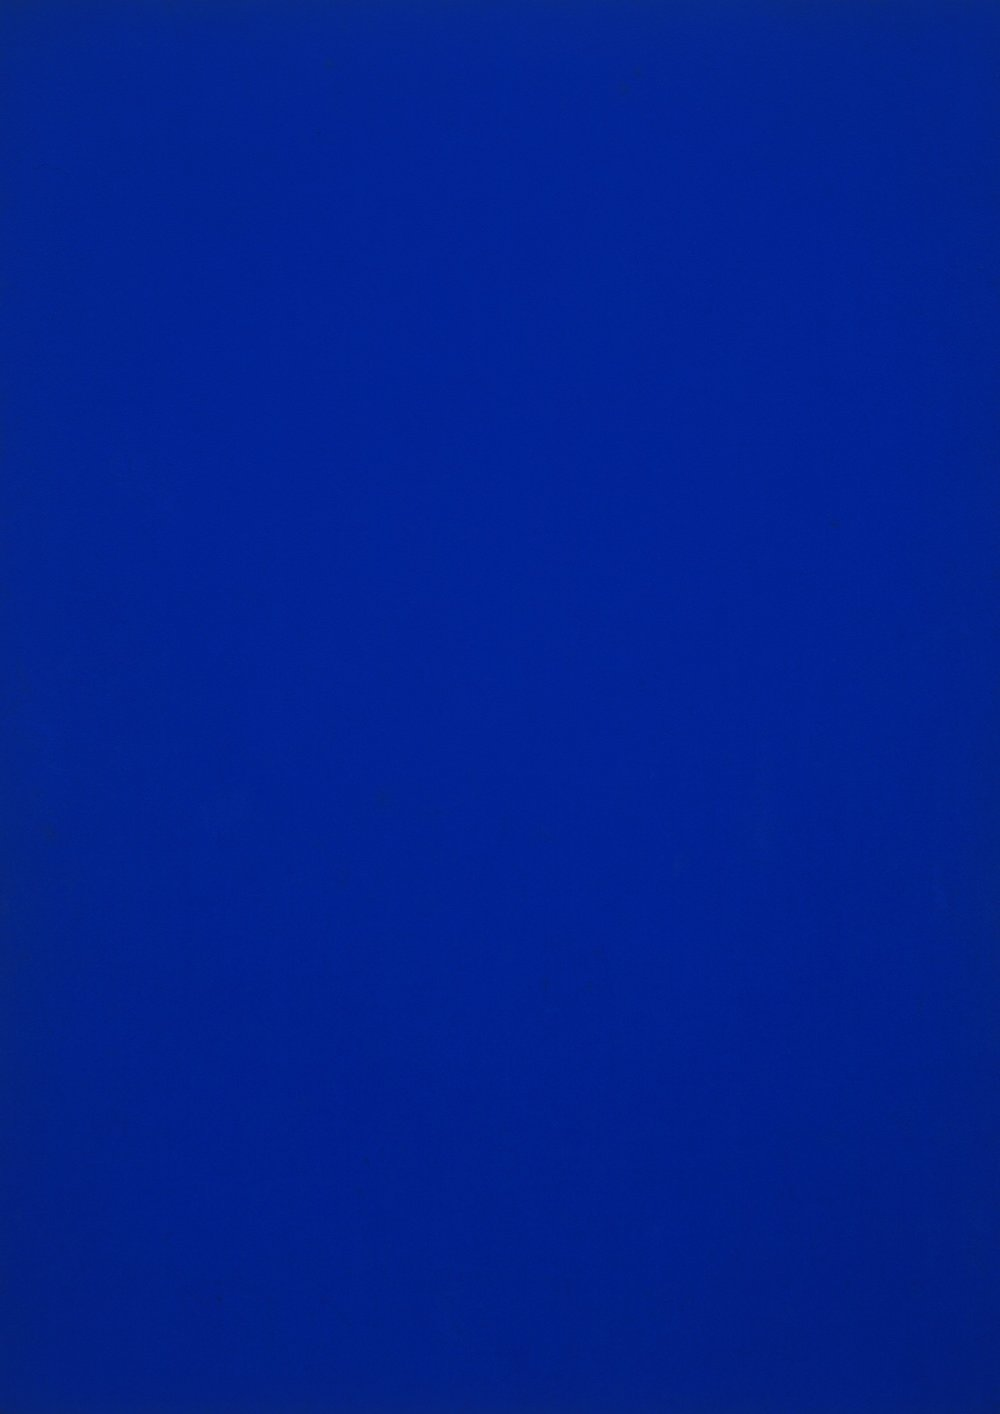 Blue Monochrome (1961) | PC: moma.org